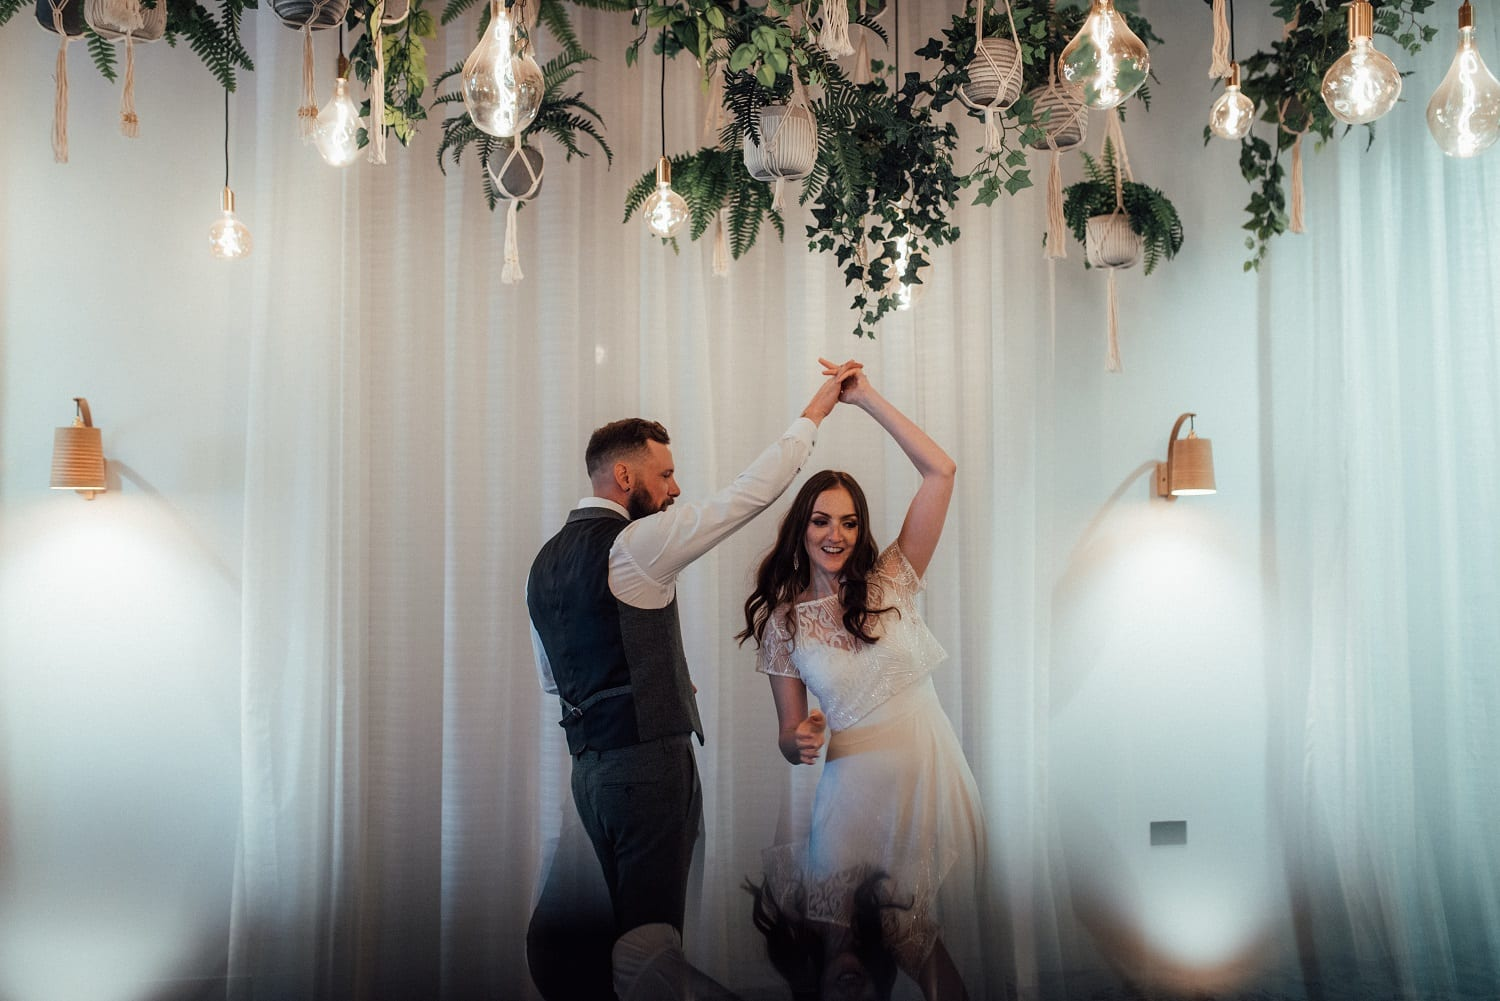 dancing your way into marriage